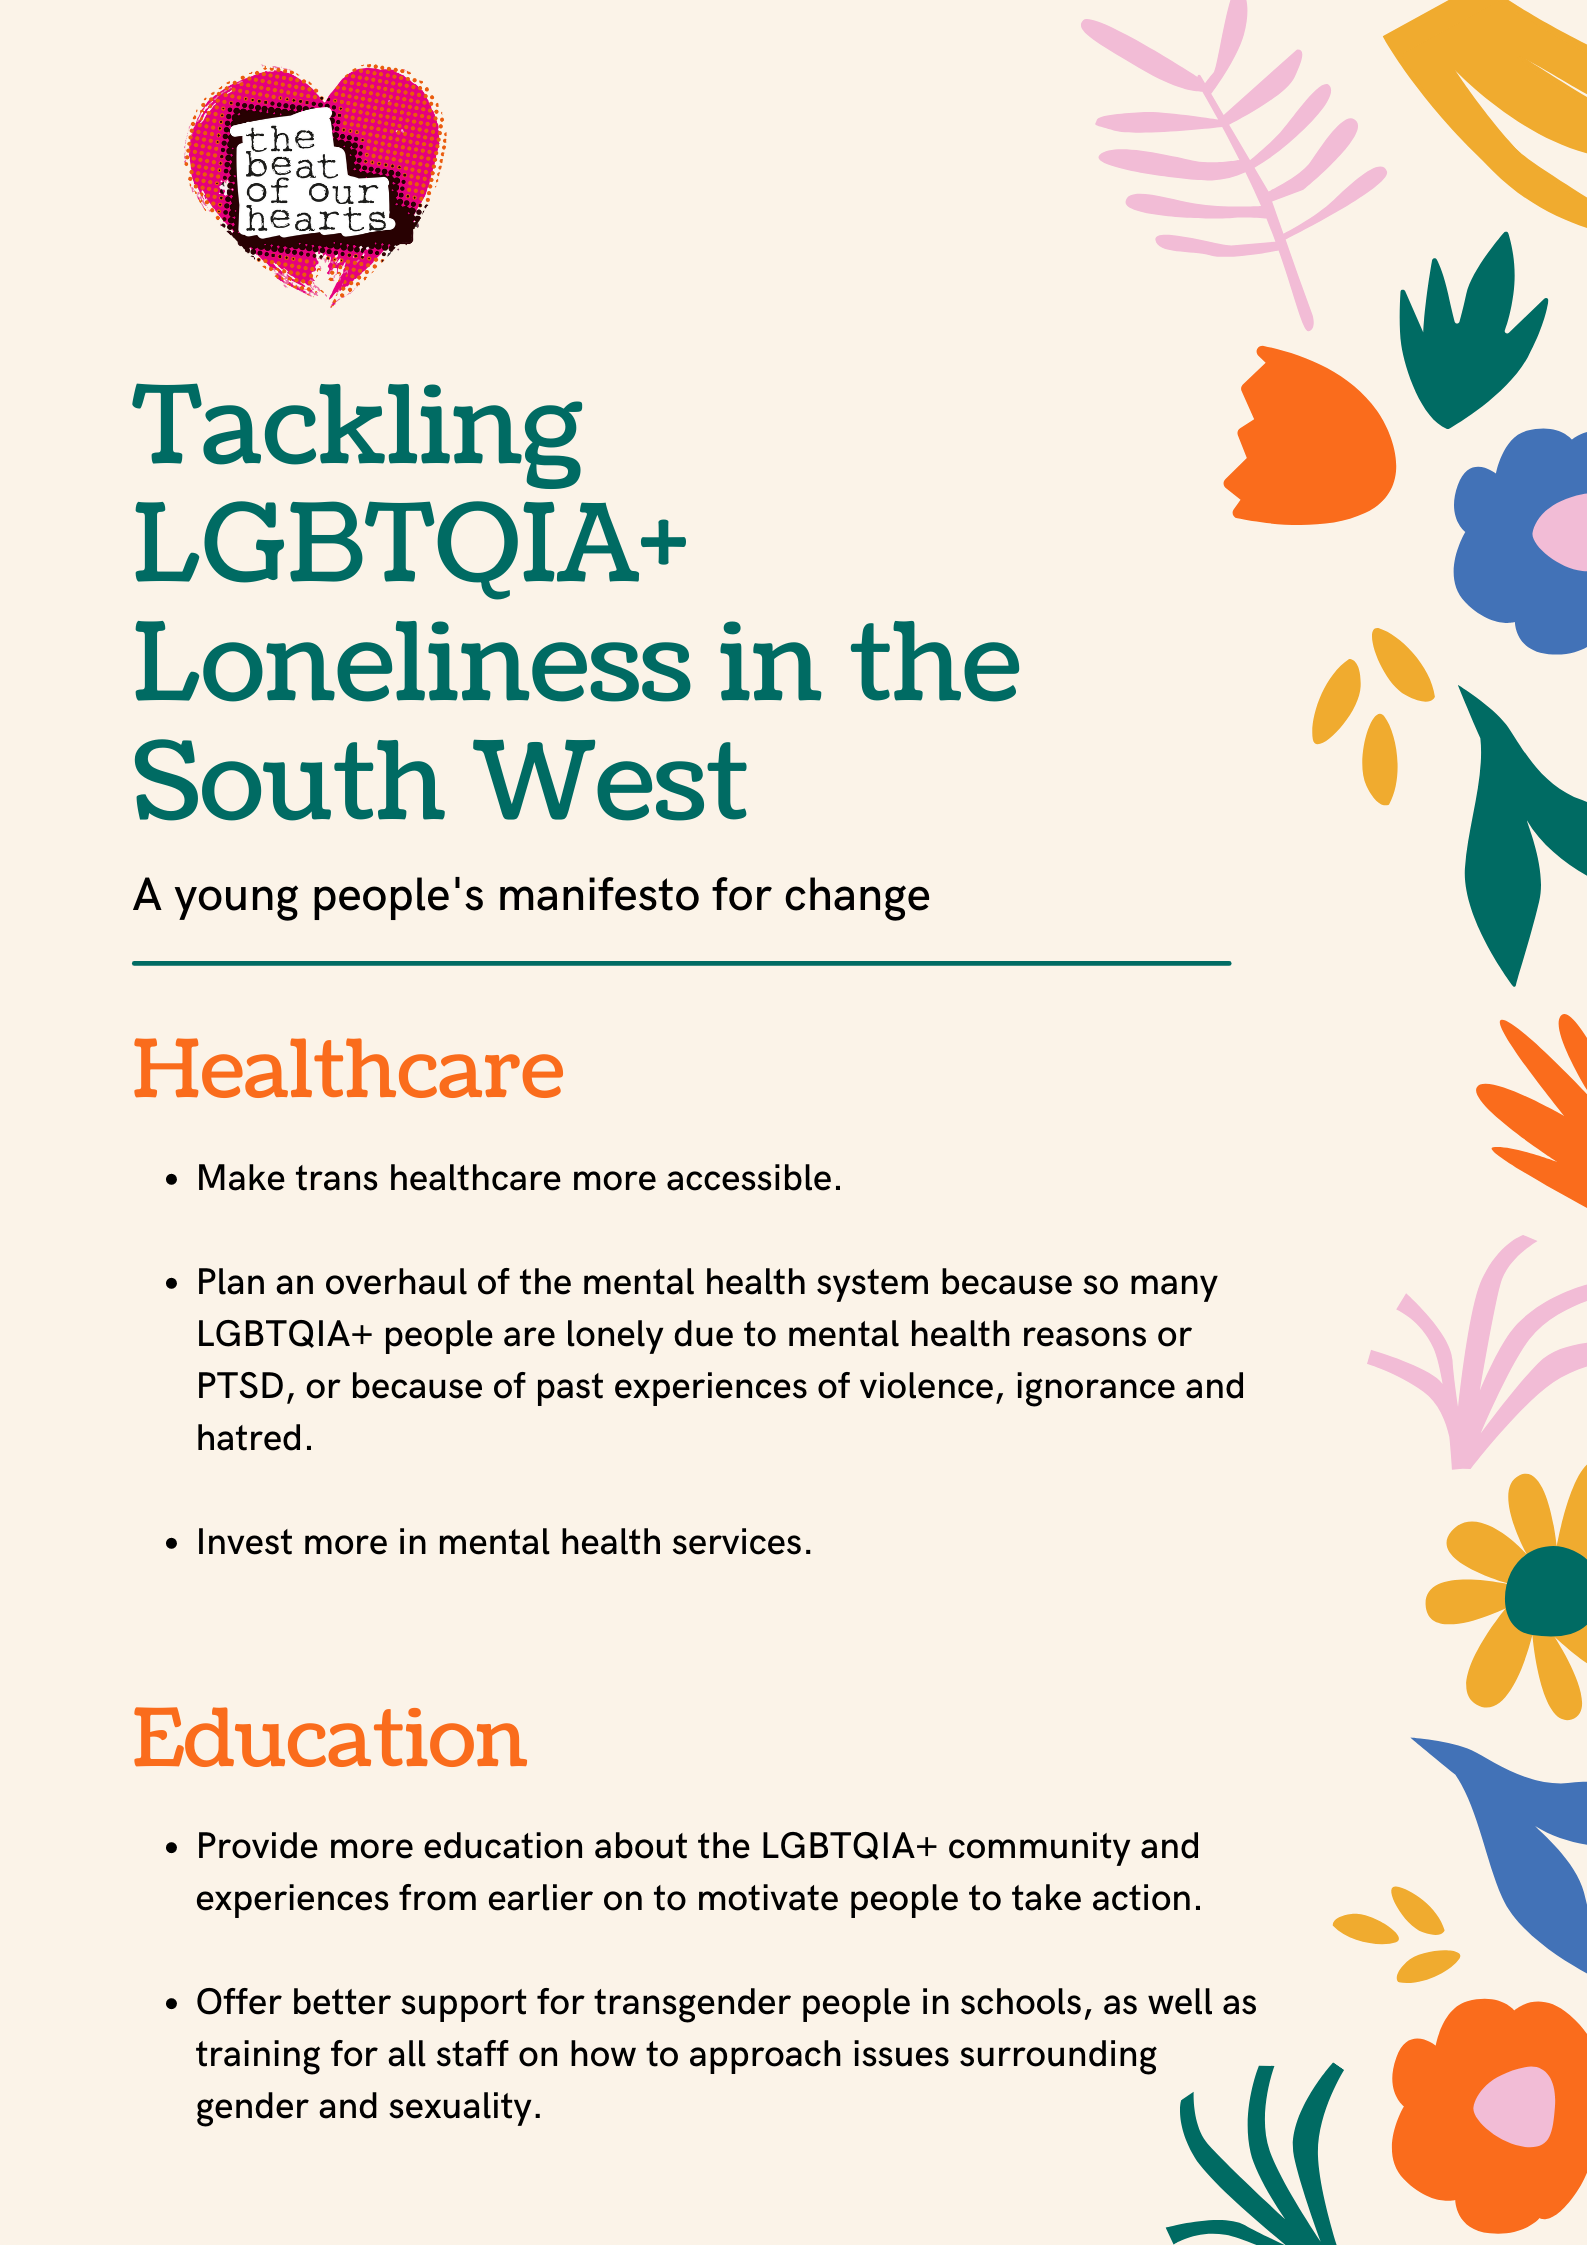 Picture of the manifesto, with a peach background and block colour flowers down the left-hand side. The Beat of Our Hearts logo is in the top left-hand corner. The manifesto is in two pages. The first page deals with healthcare and education.